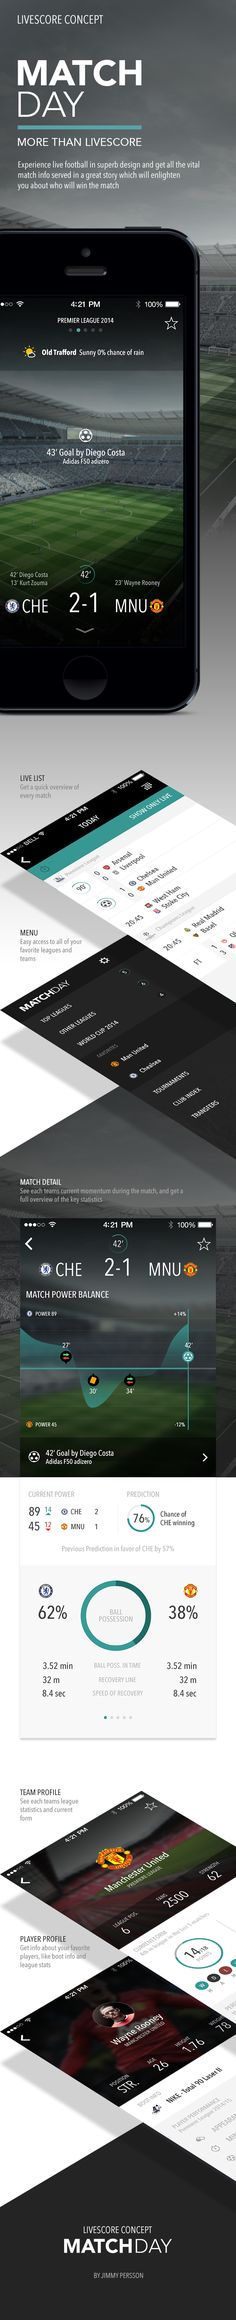 Livescore Concept on Behance (My own work)